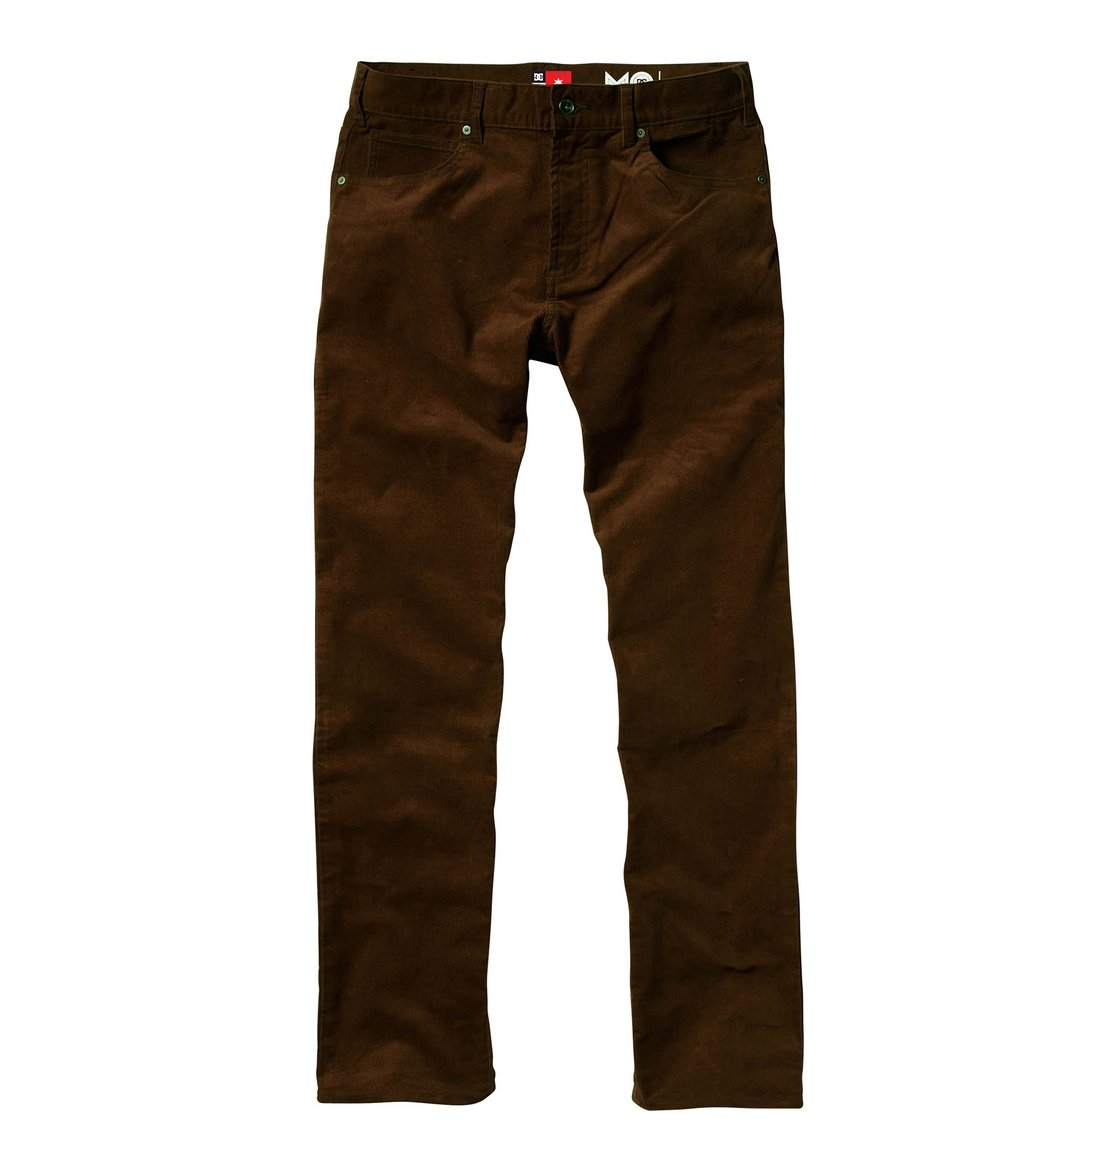 Joseph & Feiss Taupe Corduroy Classic Fit Pants REG $ $ Versatile and comfortable these soft corduroy slacks by Joseph & Feiss can be worn casually or paired with a sport coat and tie for more dressy occasions.